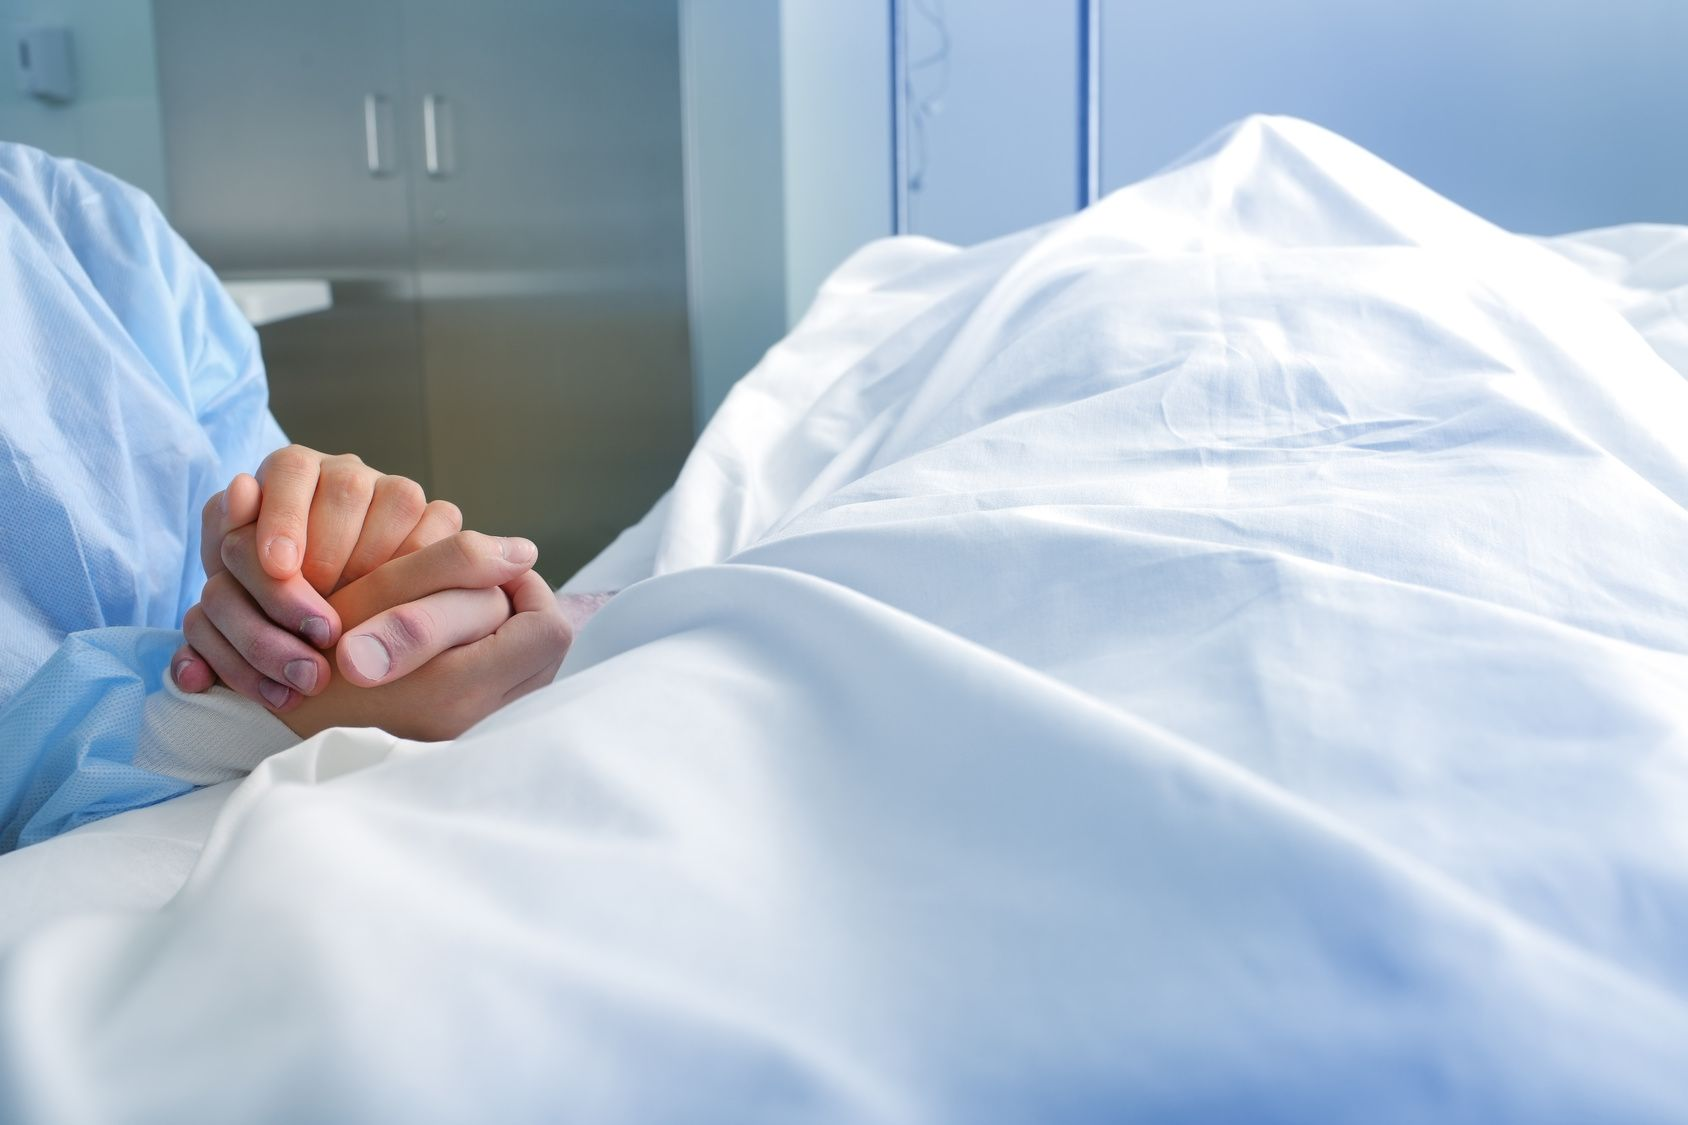 Wife holds the hand of the deceased spouse in the hospital